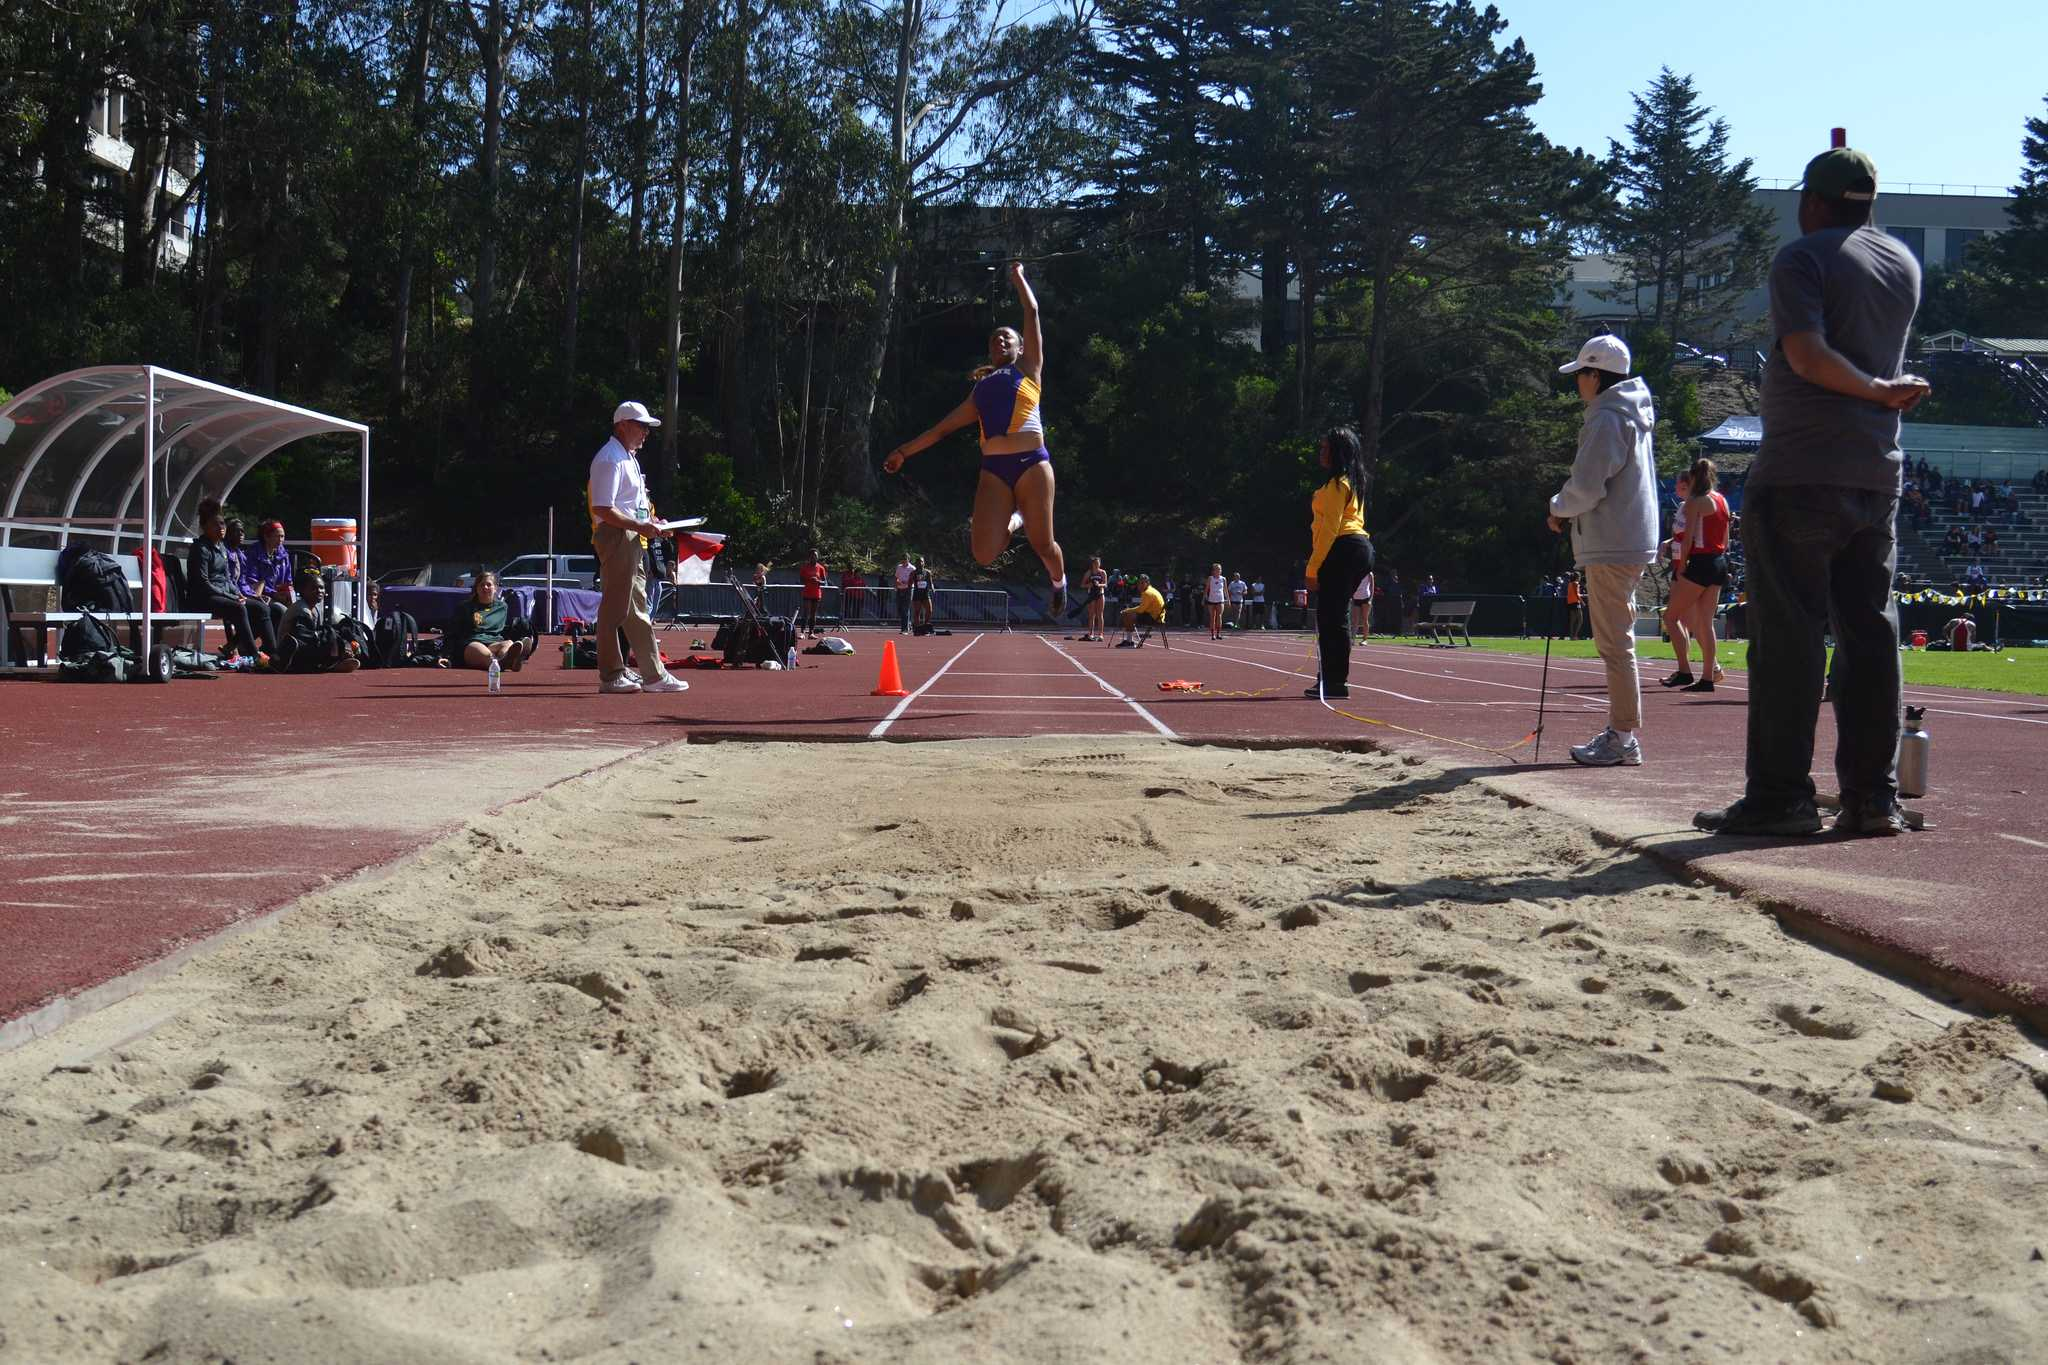 Graduating criminal justice major and record setting athlete, Hilary King, jumps 5.79 meters, in the long jump, taking first place at Cox Stadium Friday, April 3. She recently broke the Women's record at SFSU by jumping 5.79 meters. (Helen Tinna / Xpress)